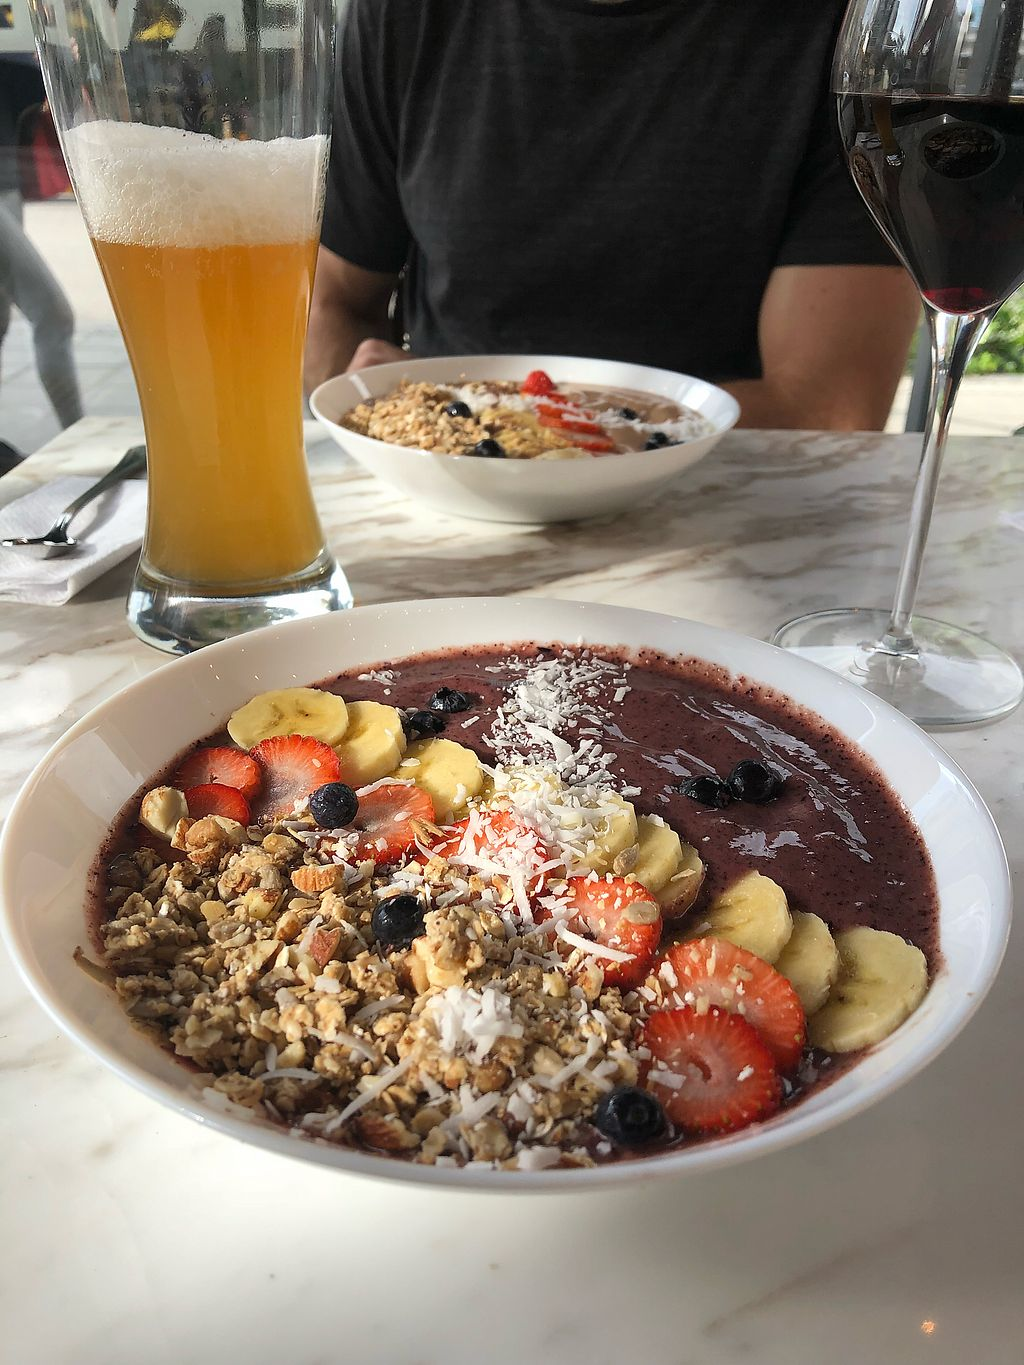 """Photo of Makeout Colombia  by <a href=""""/members/profile/dee_dee"""">dee_dee</a> <br/>Açaí and cacao bowls <br/> January 29, 2018  - <a href='/contact/abuse/image/108265/352182'>Report</a>"""